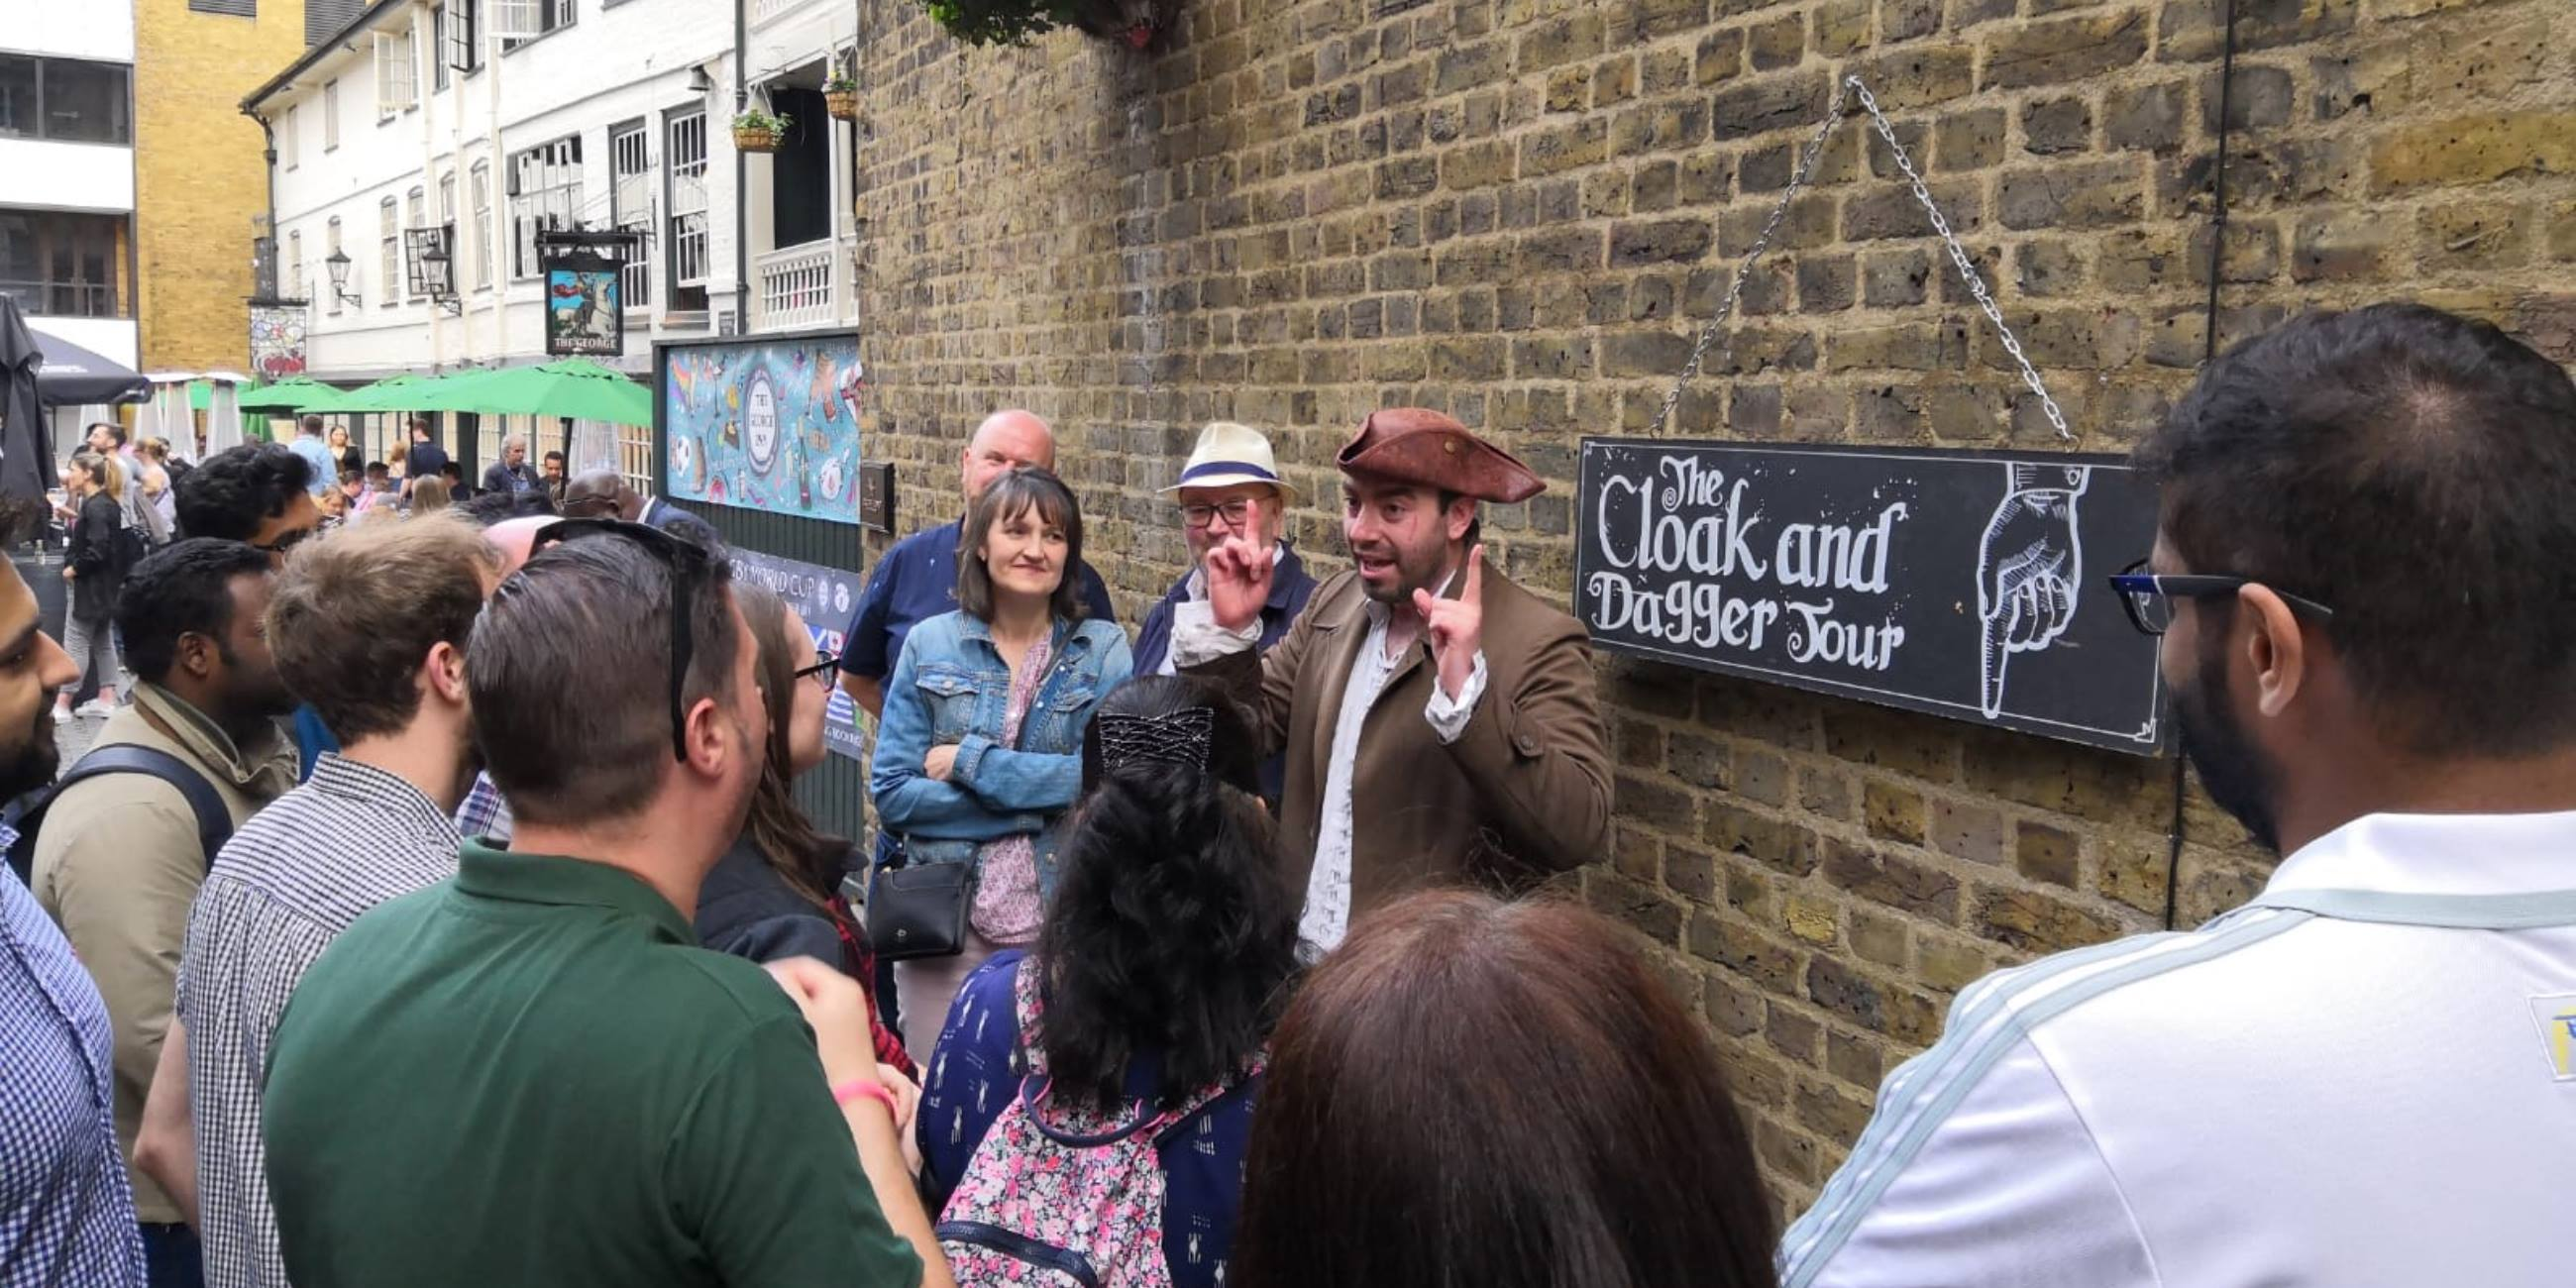 Why-You-Should-Check-Out-The-Cloak-and-Dagger-Tour